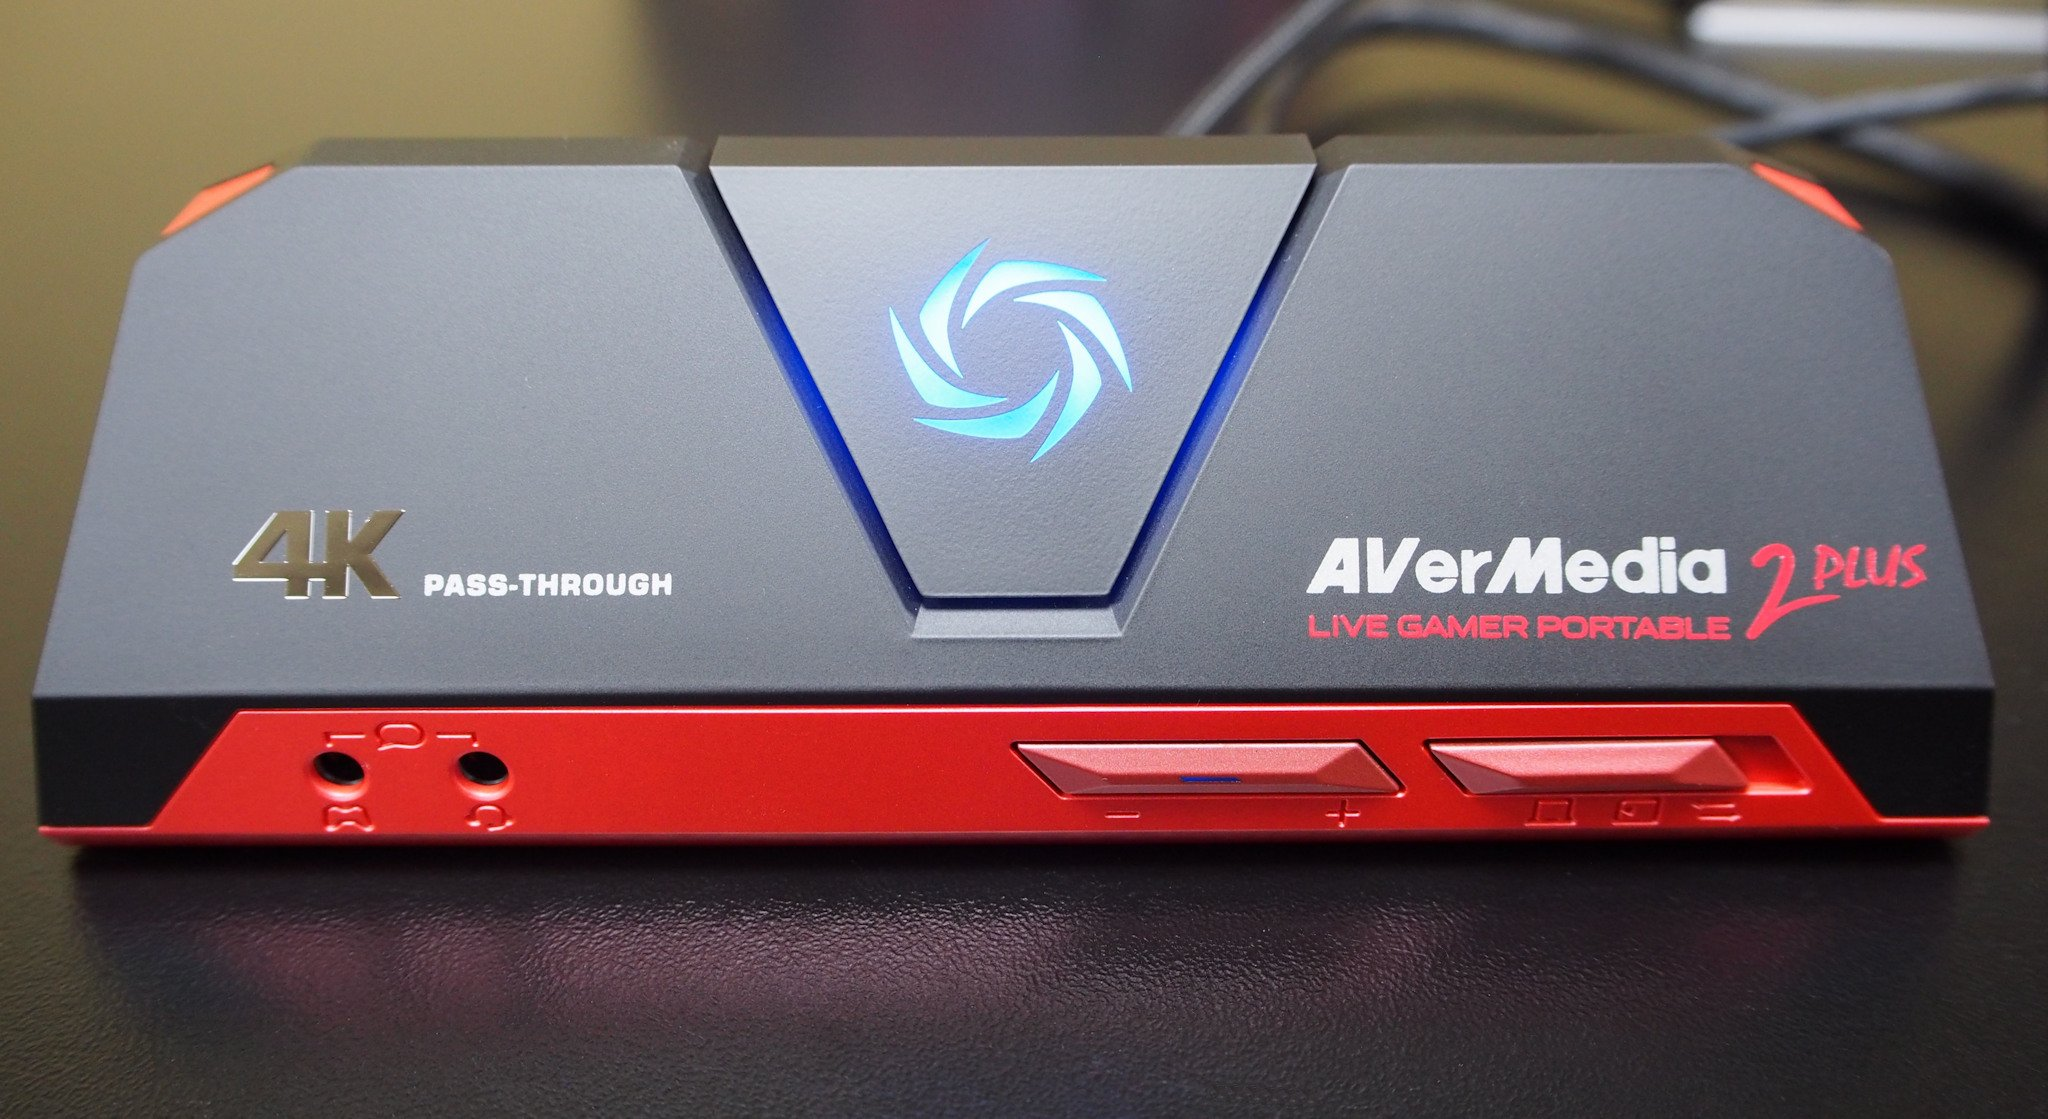 AVerMedia Live Gamer Portable 2 Plus Capture Device Has 4K Passthrough And PC Free Mode